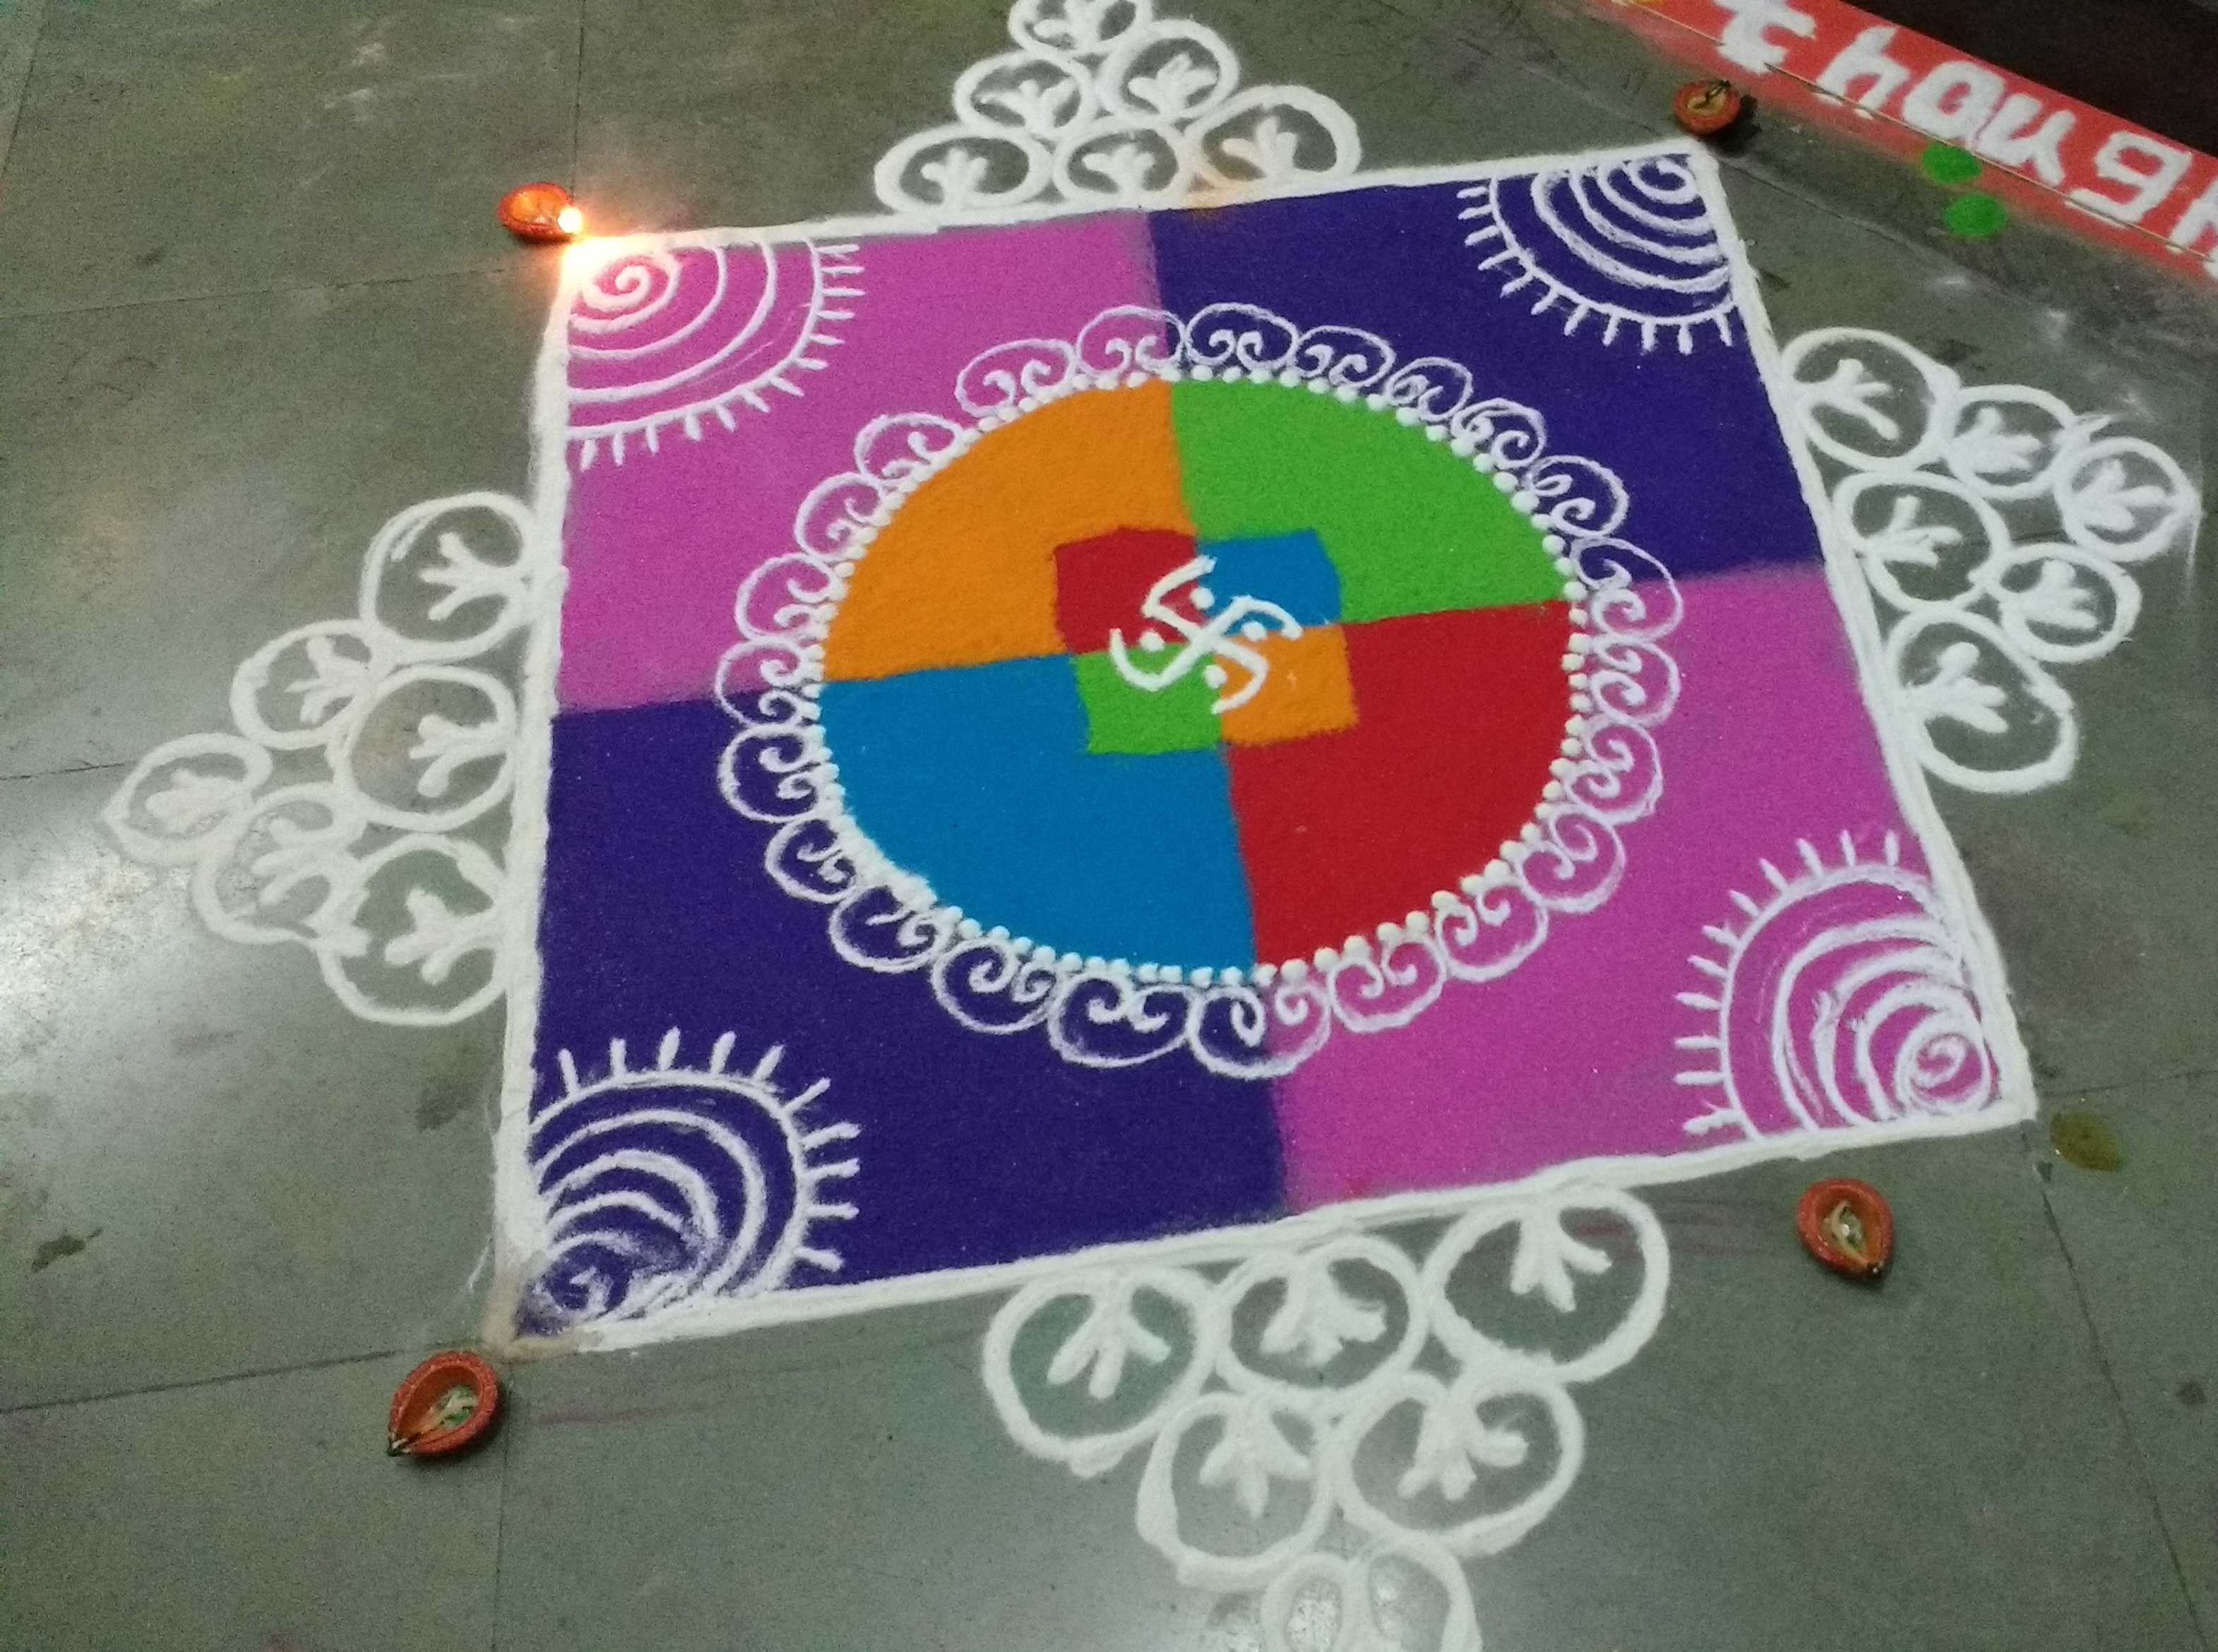 Amazing Rangoli Designs With Theme Go for Rangoli Designs With Theme Go Green  75tgx